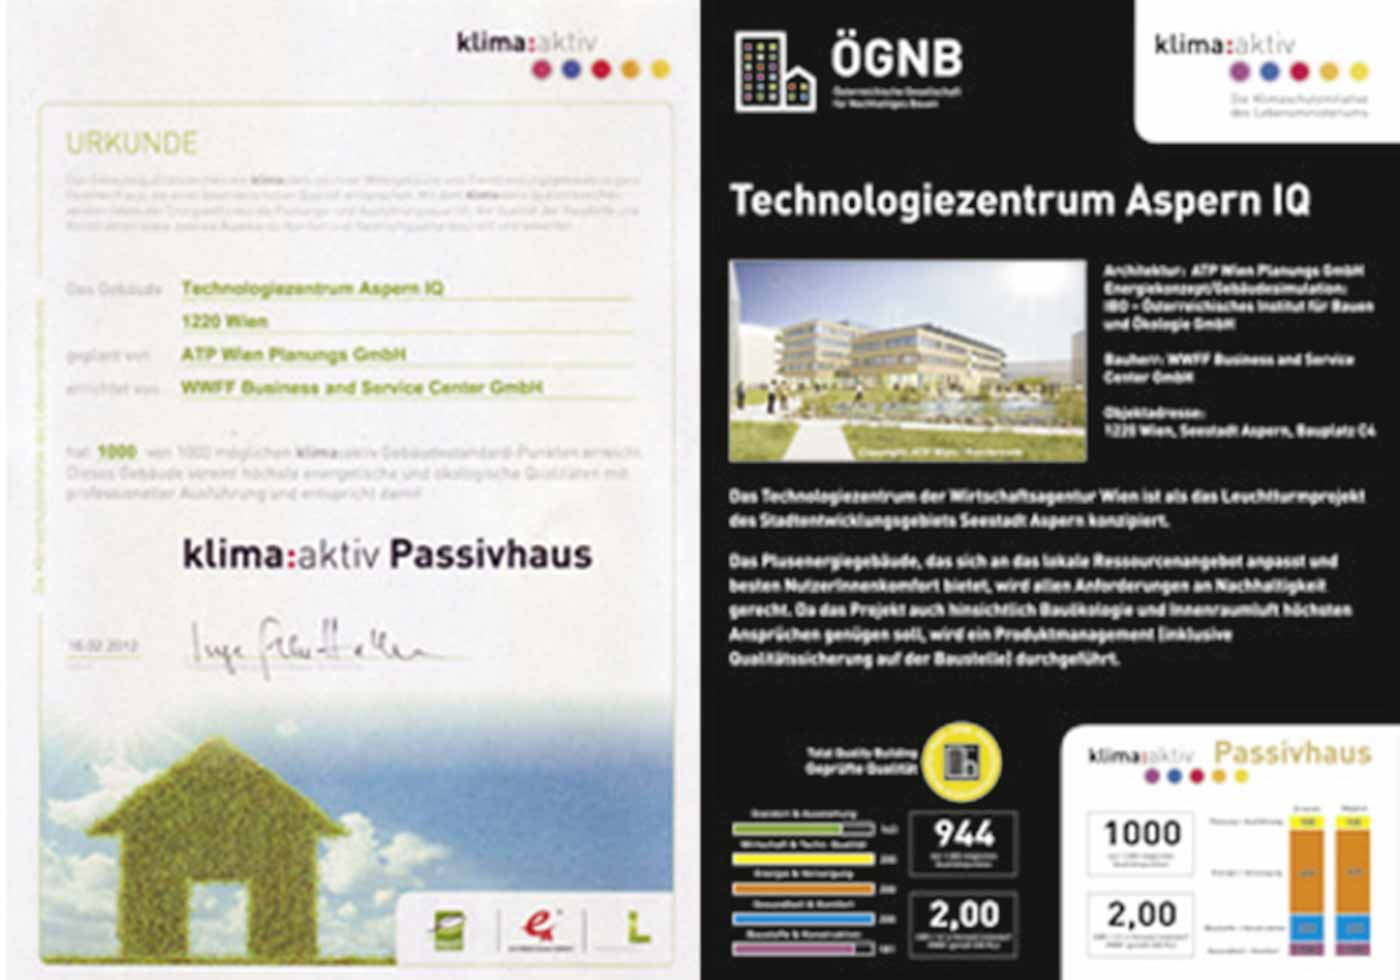 klima:aktiv and ÖGNB Building Quality Certificate for aspern IQ